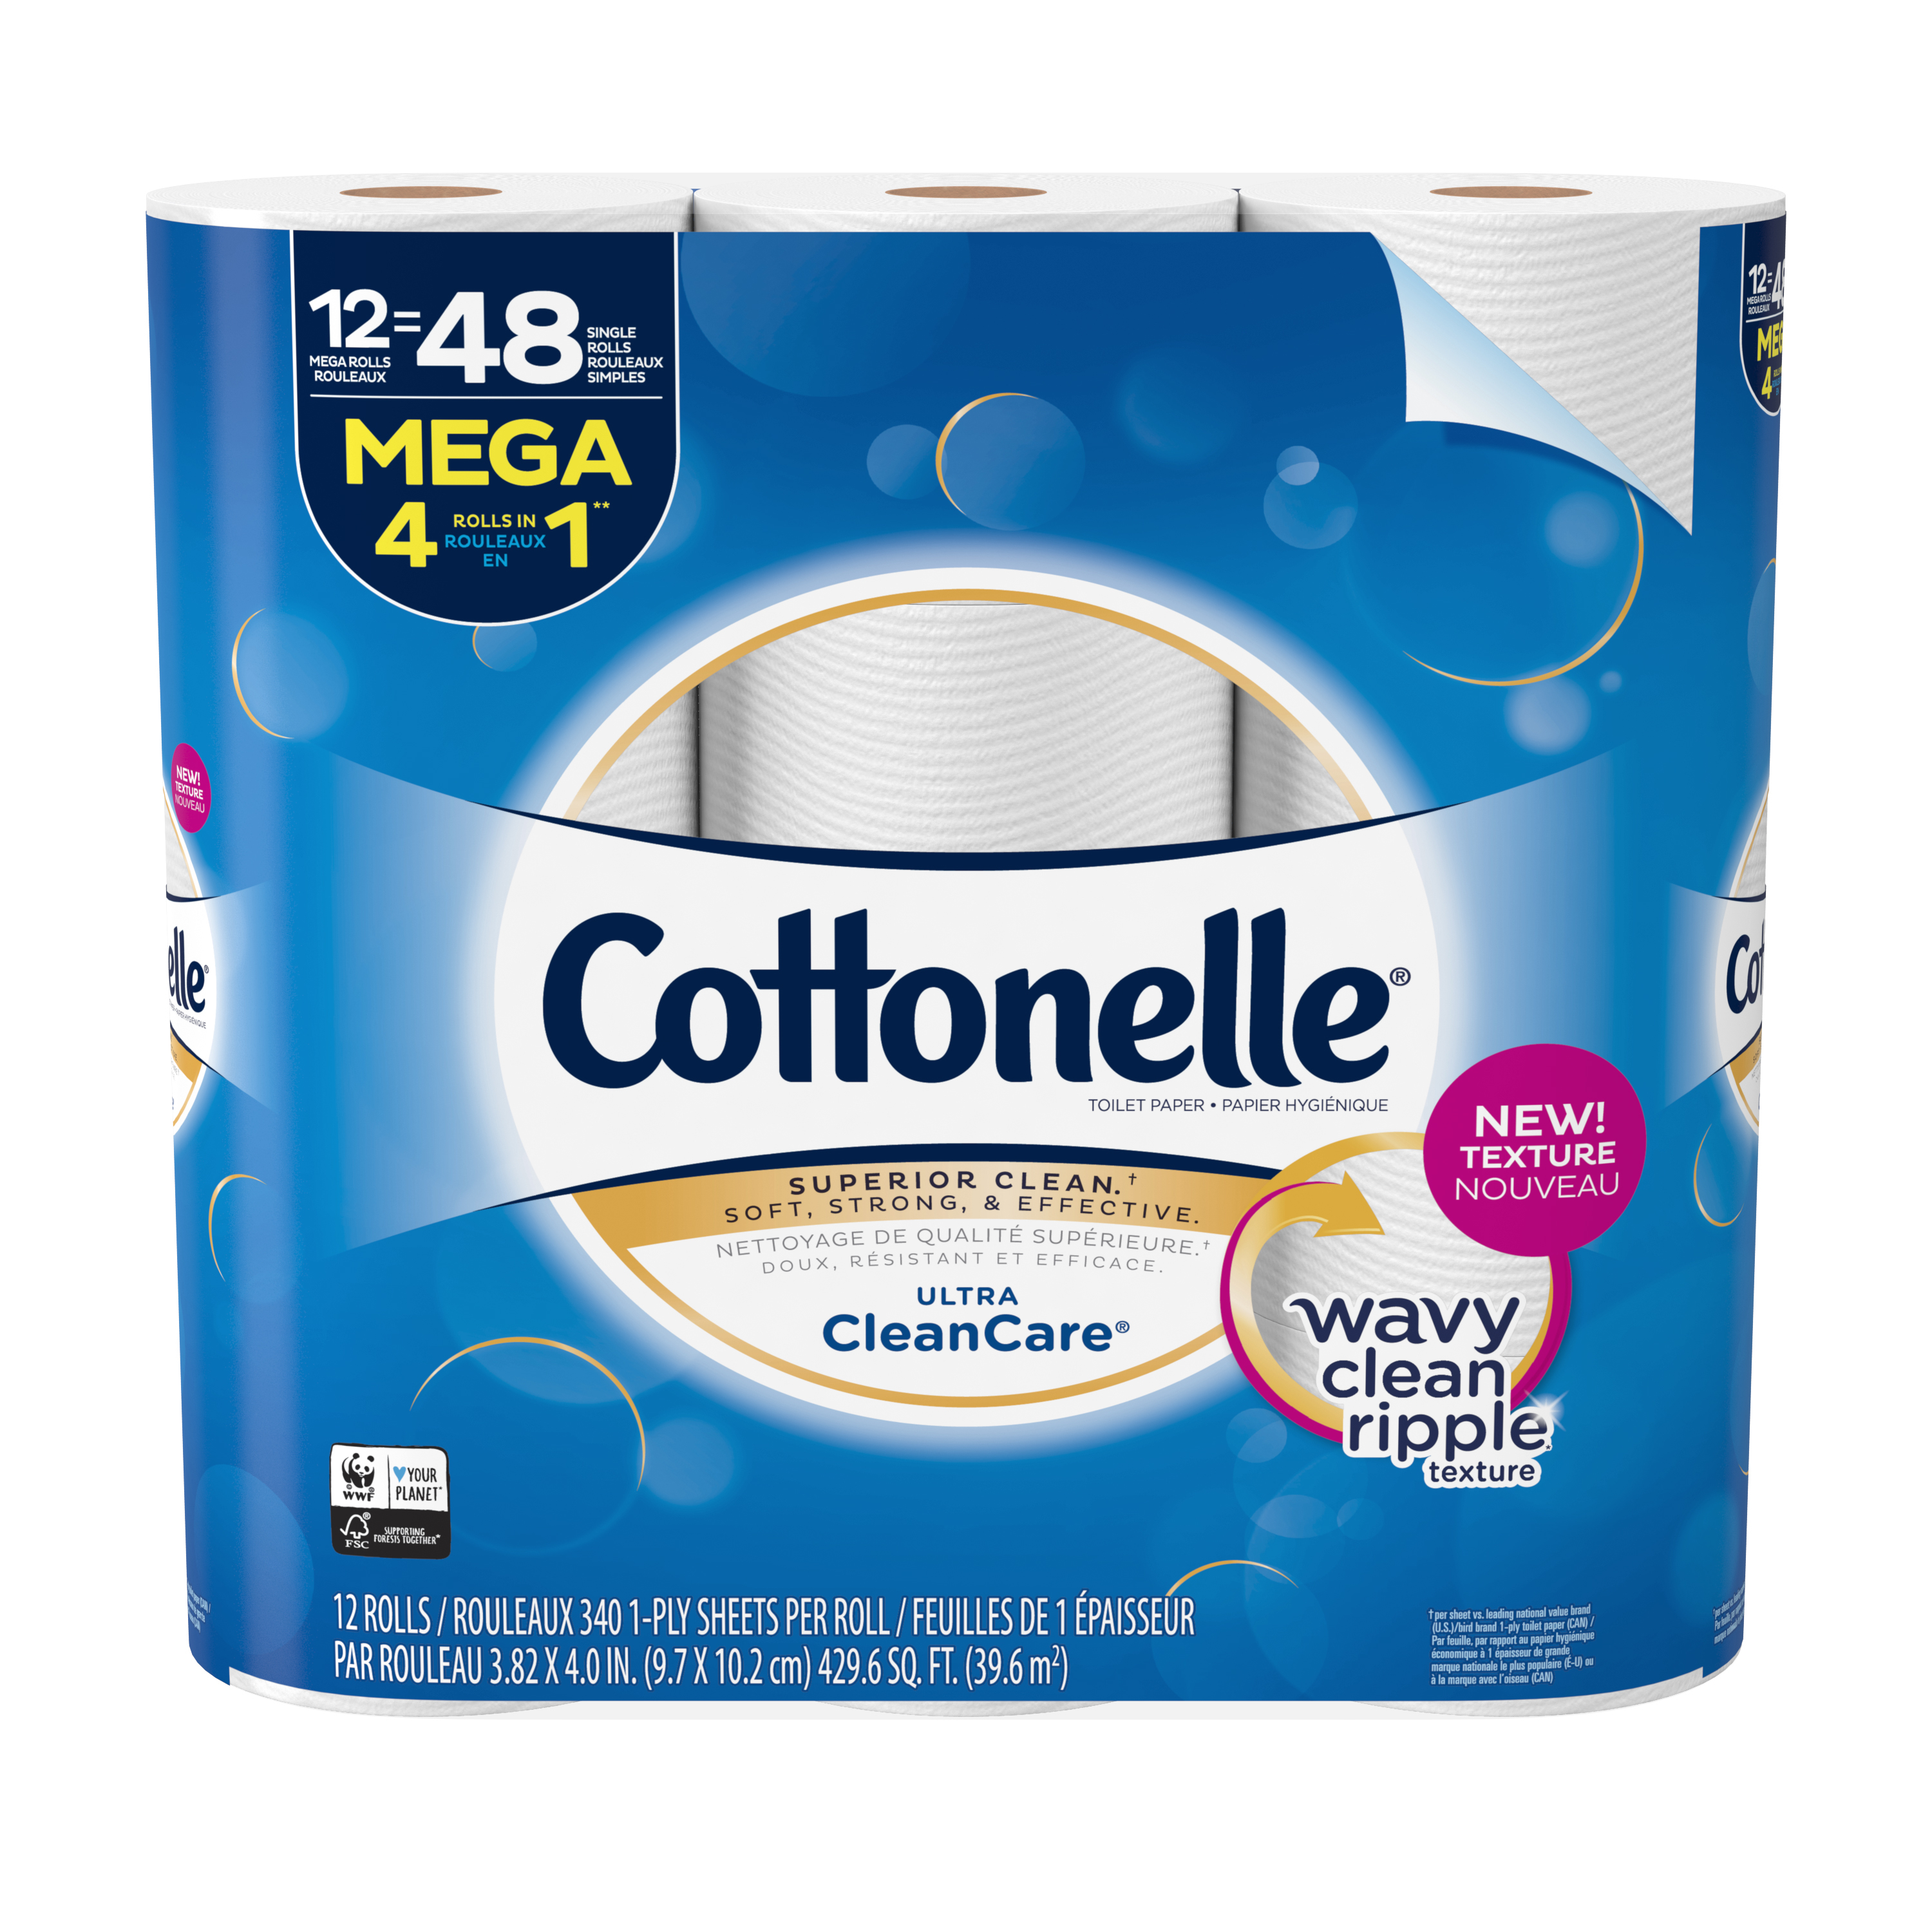 Cottonelle Clean Care, 12 Mega Rolls, Toilet Paper